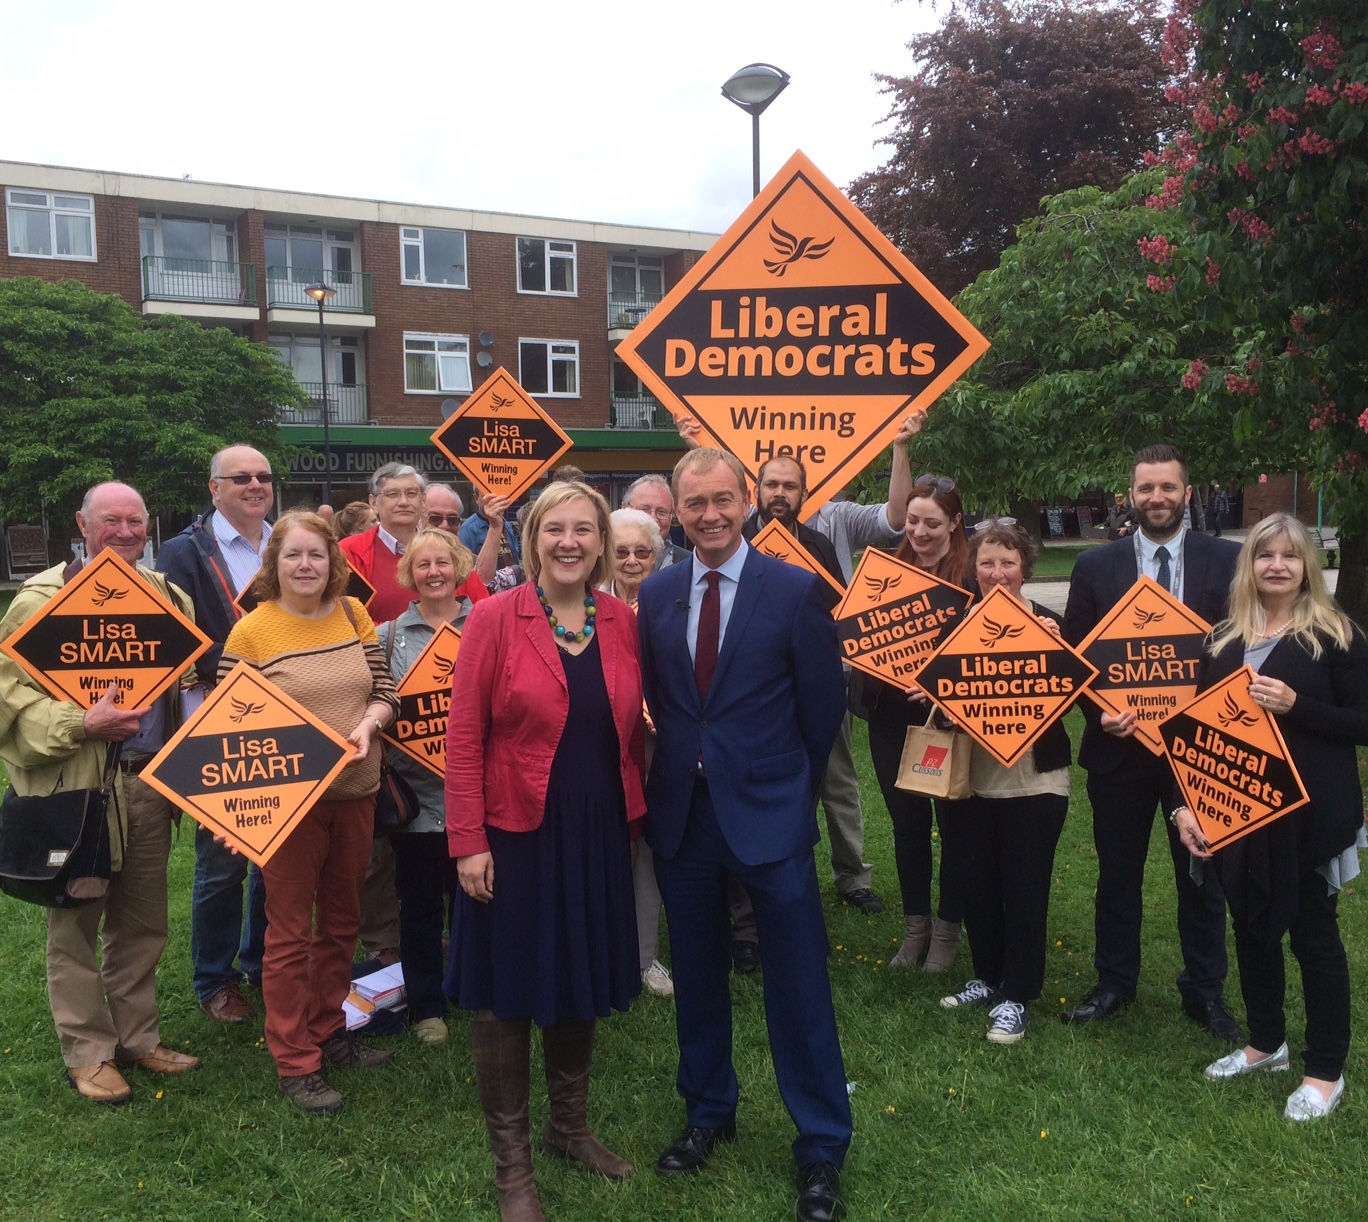 Tim_Farron_Lisa_Smart_Woodley_Precinct.jpg